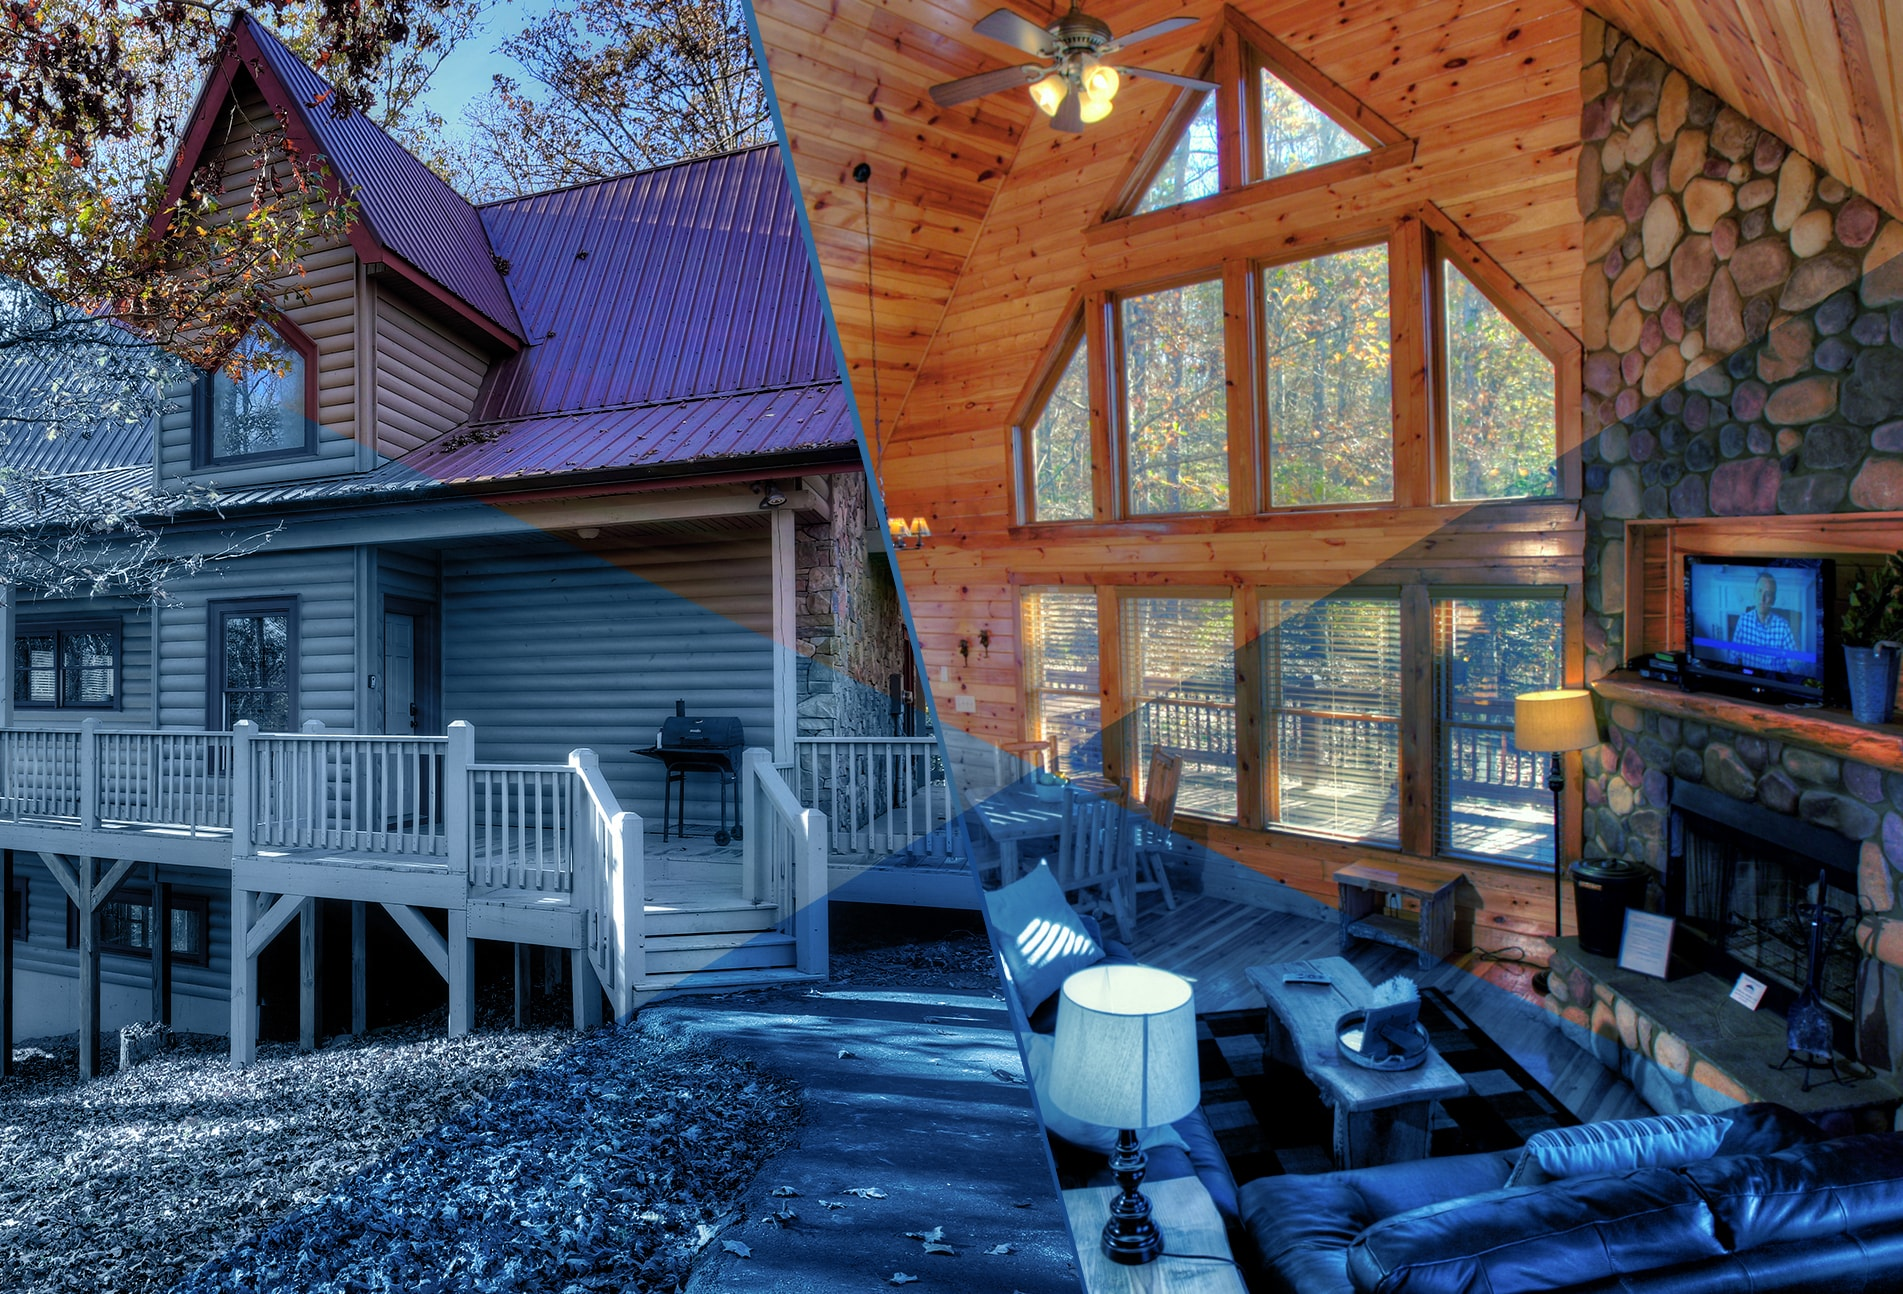 CCCR-cabins-investments-hero-B1-LARGE-PARALLAX.jpg